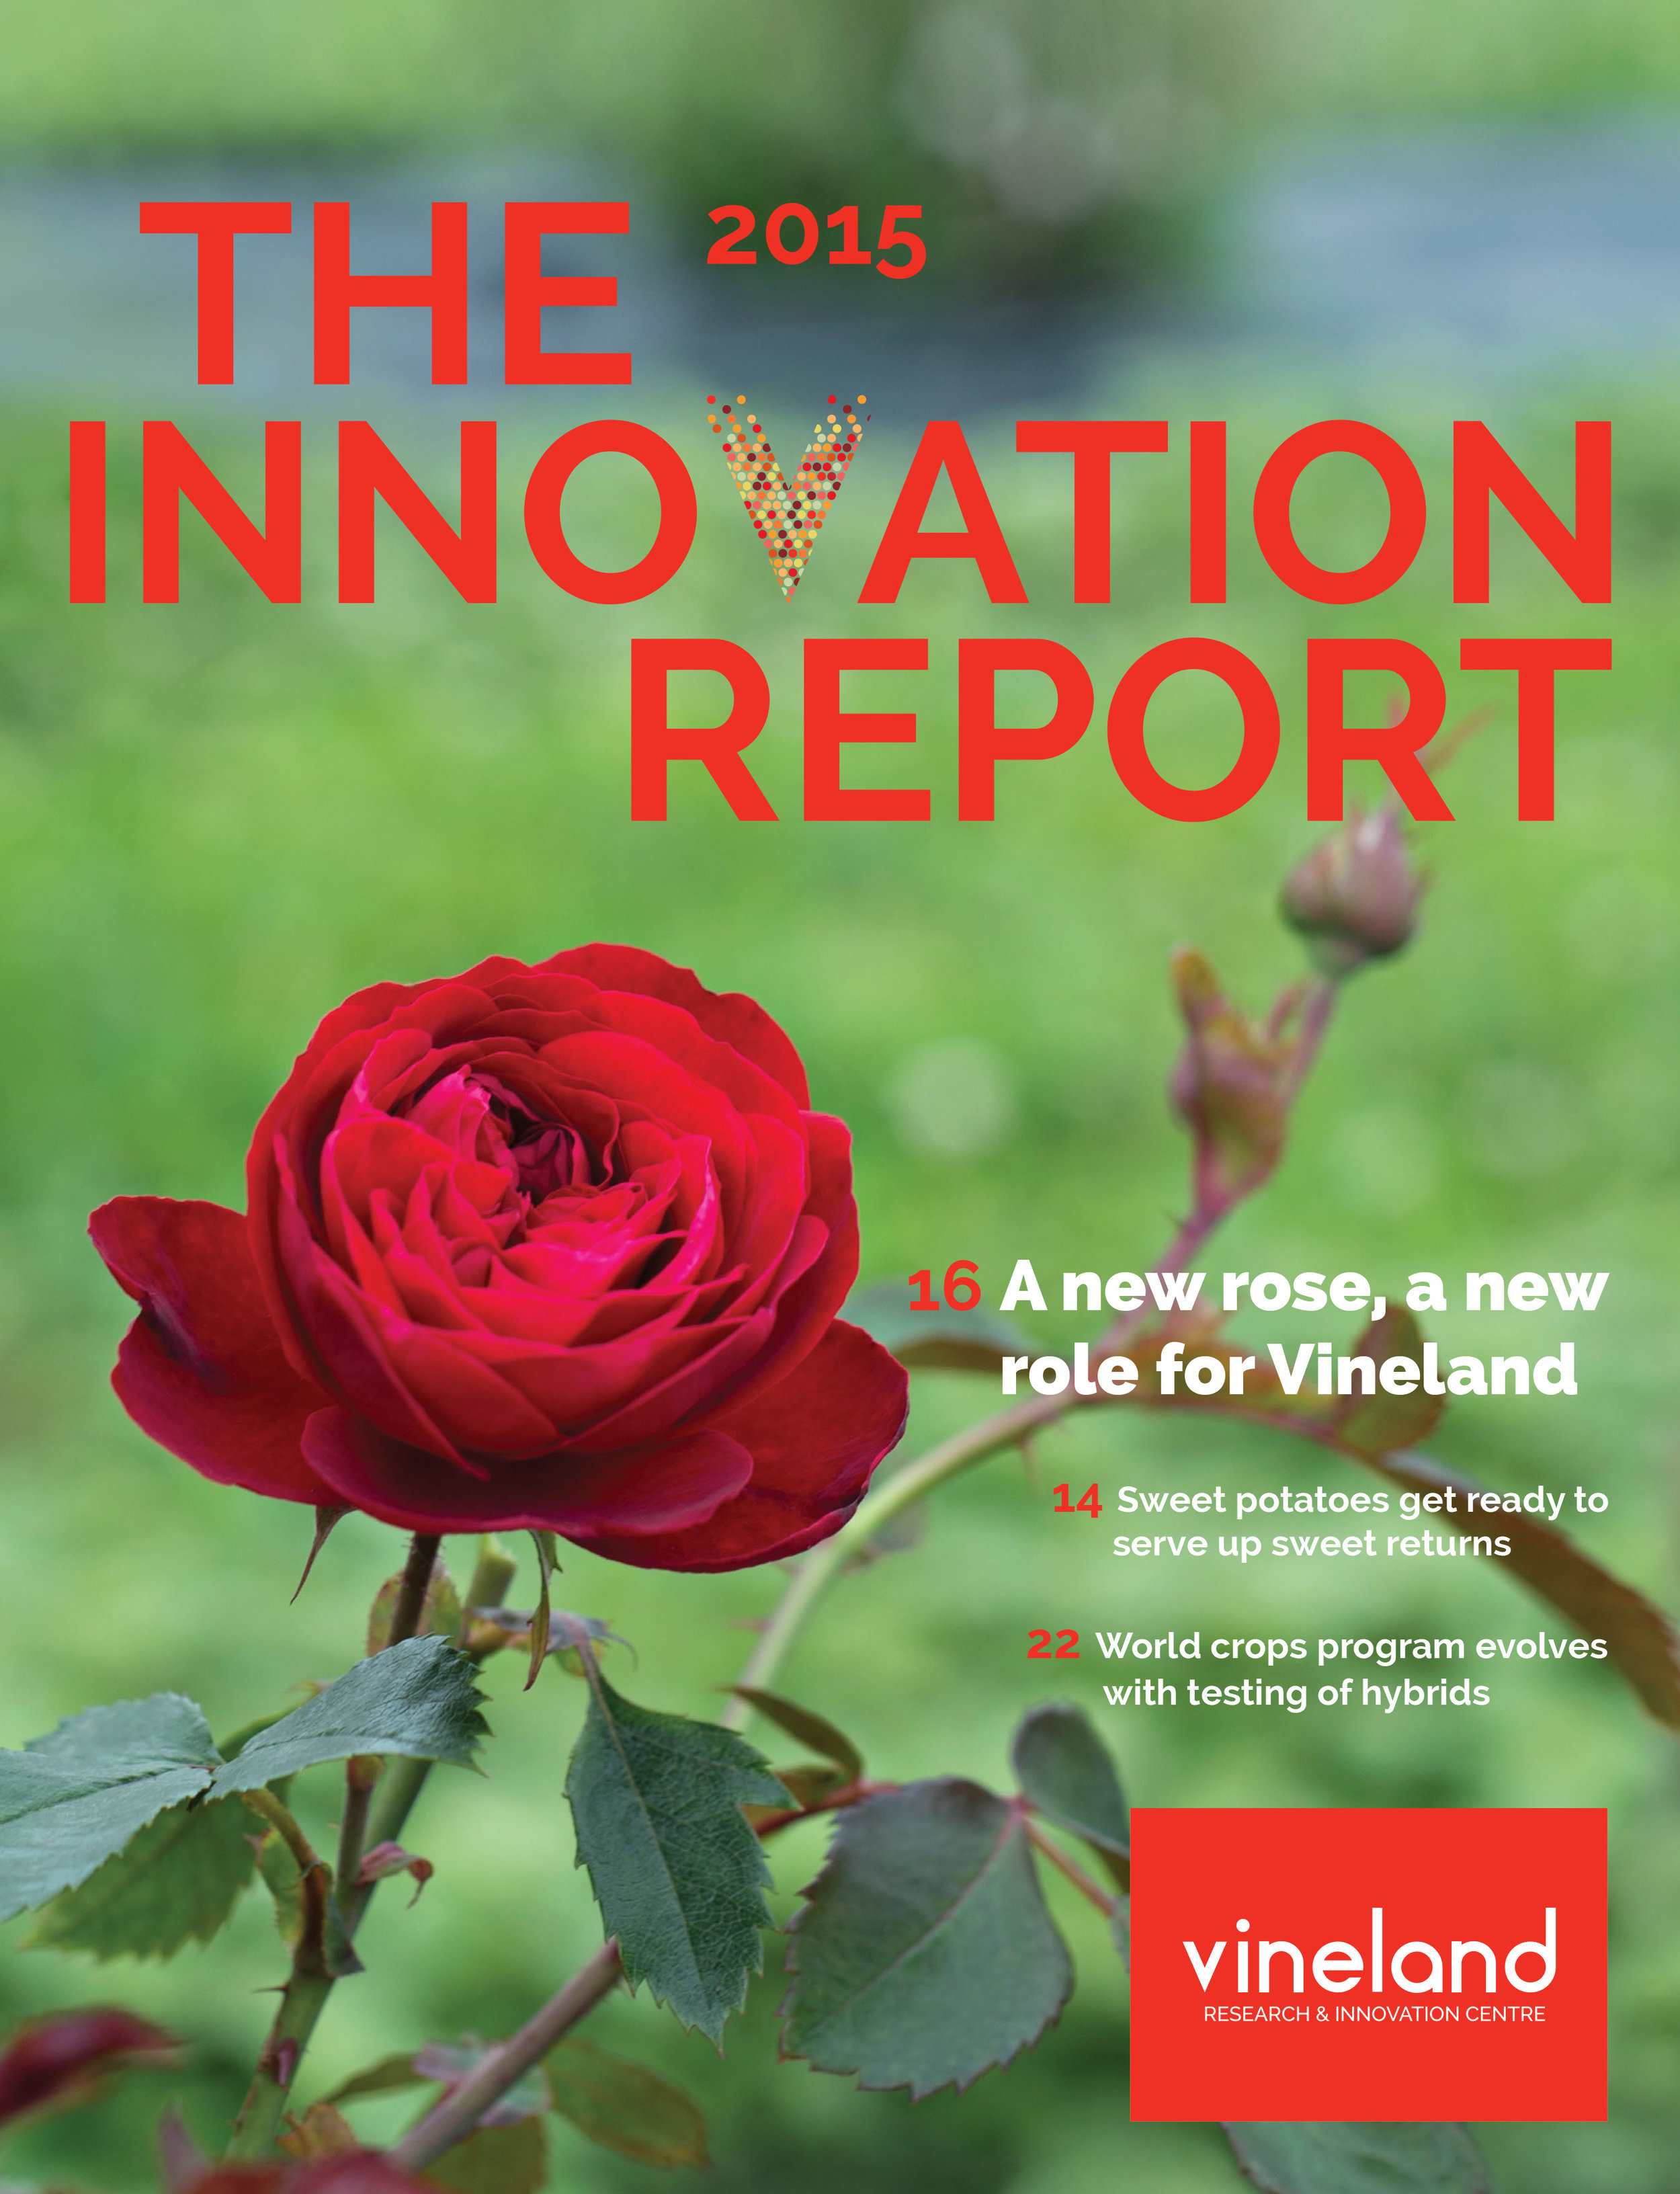 Marta-Hewson-Advertising-Roses-Innovation-Report-Vineland-Research.jpg